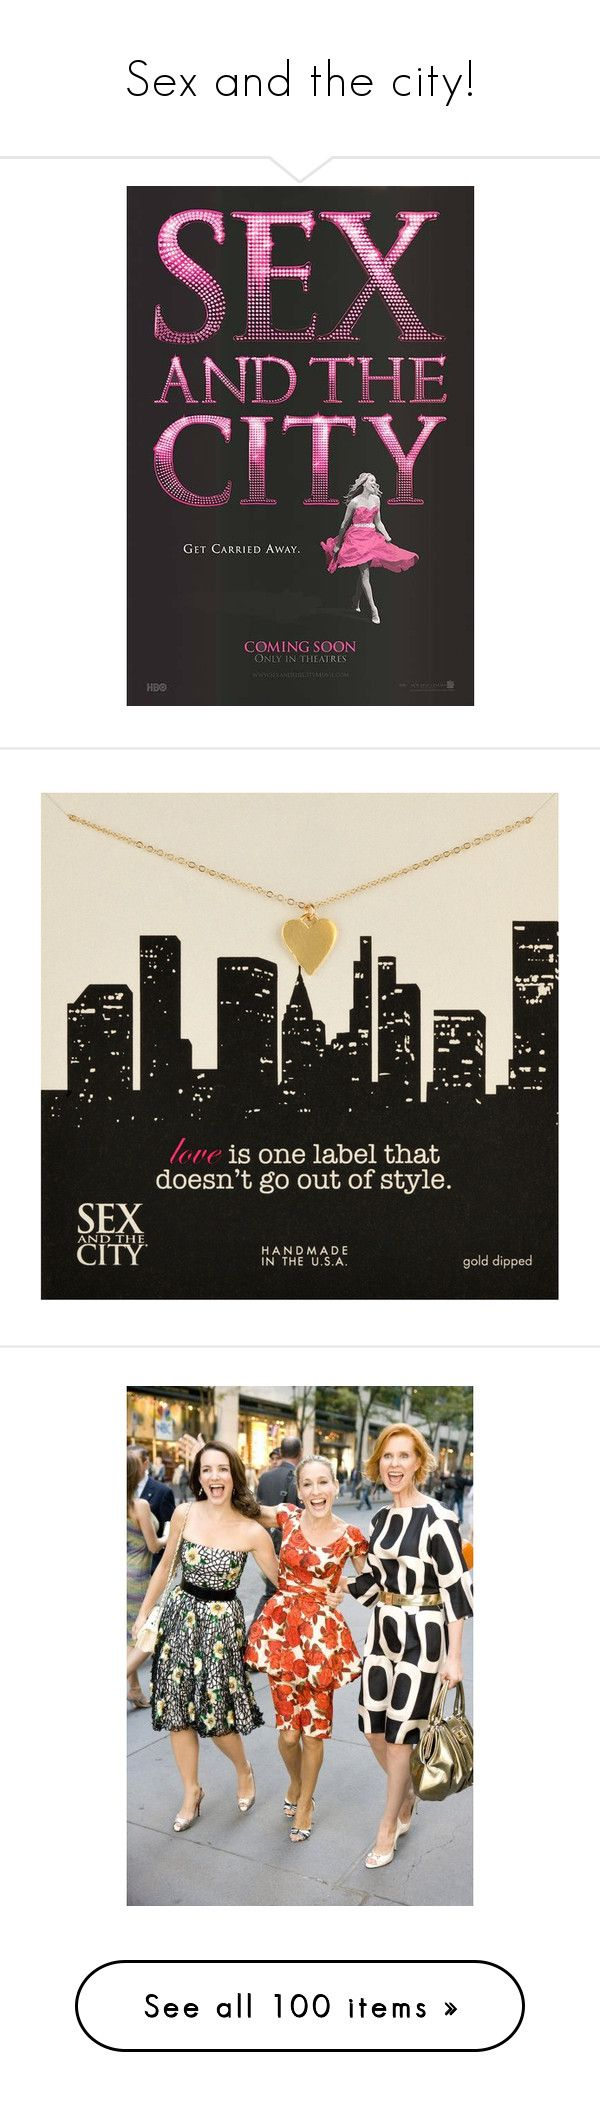 """""""Sex and the city!"""" by martamu ❤ liked on Polyvore featuring text, words, quotes, backgrounds, phrases, saying, home, home decor, wall art and jewelry"""